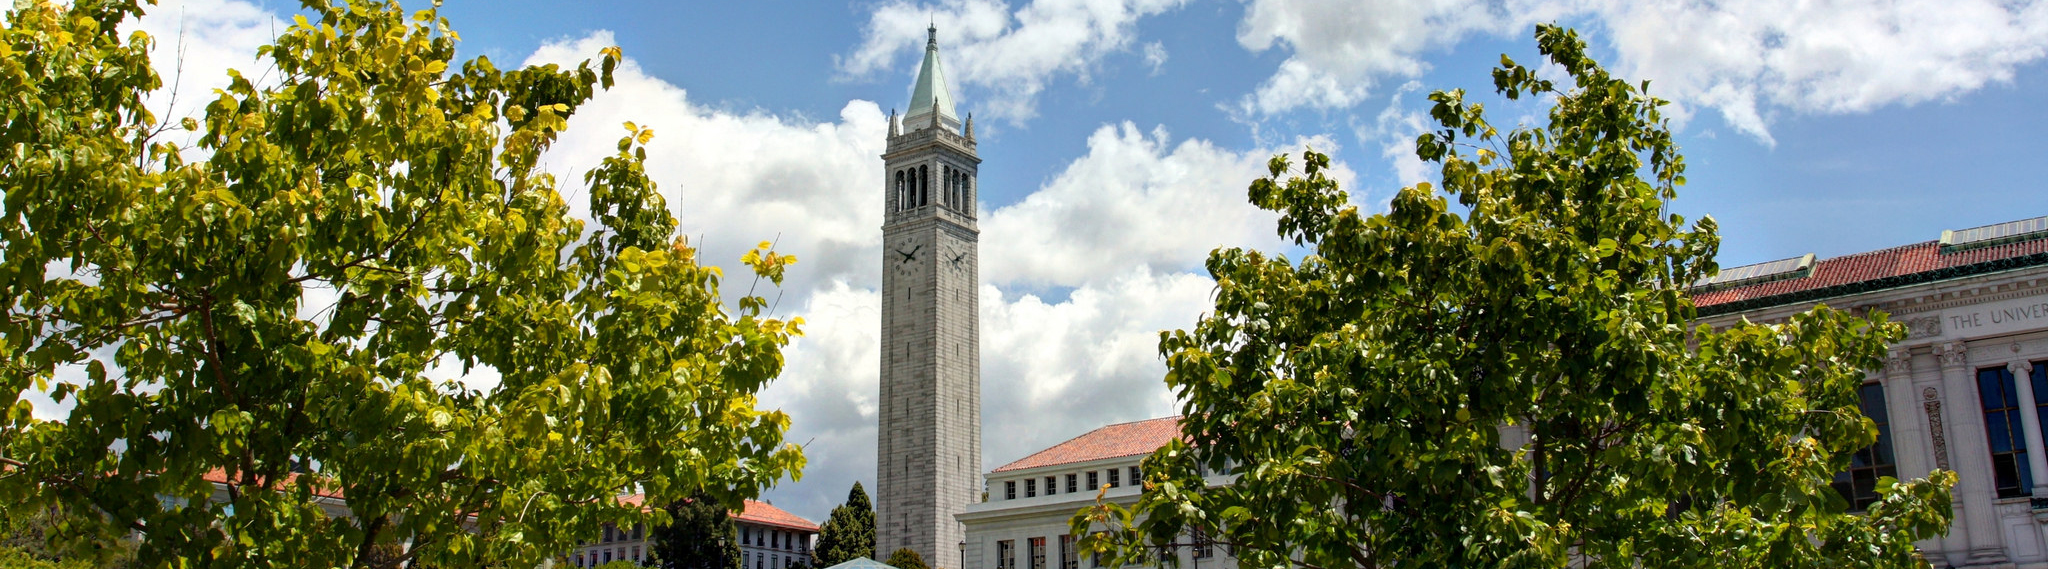 Scene of the campanile on the UC Berkeley campus